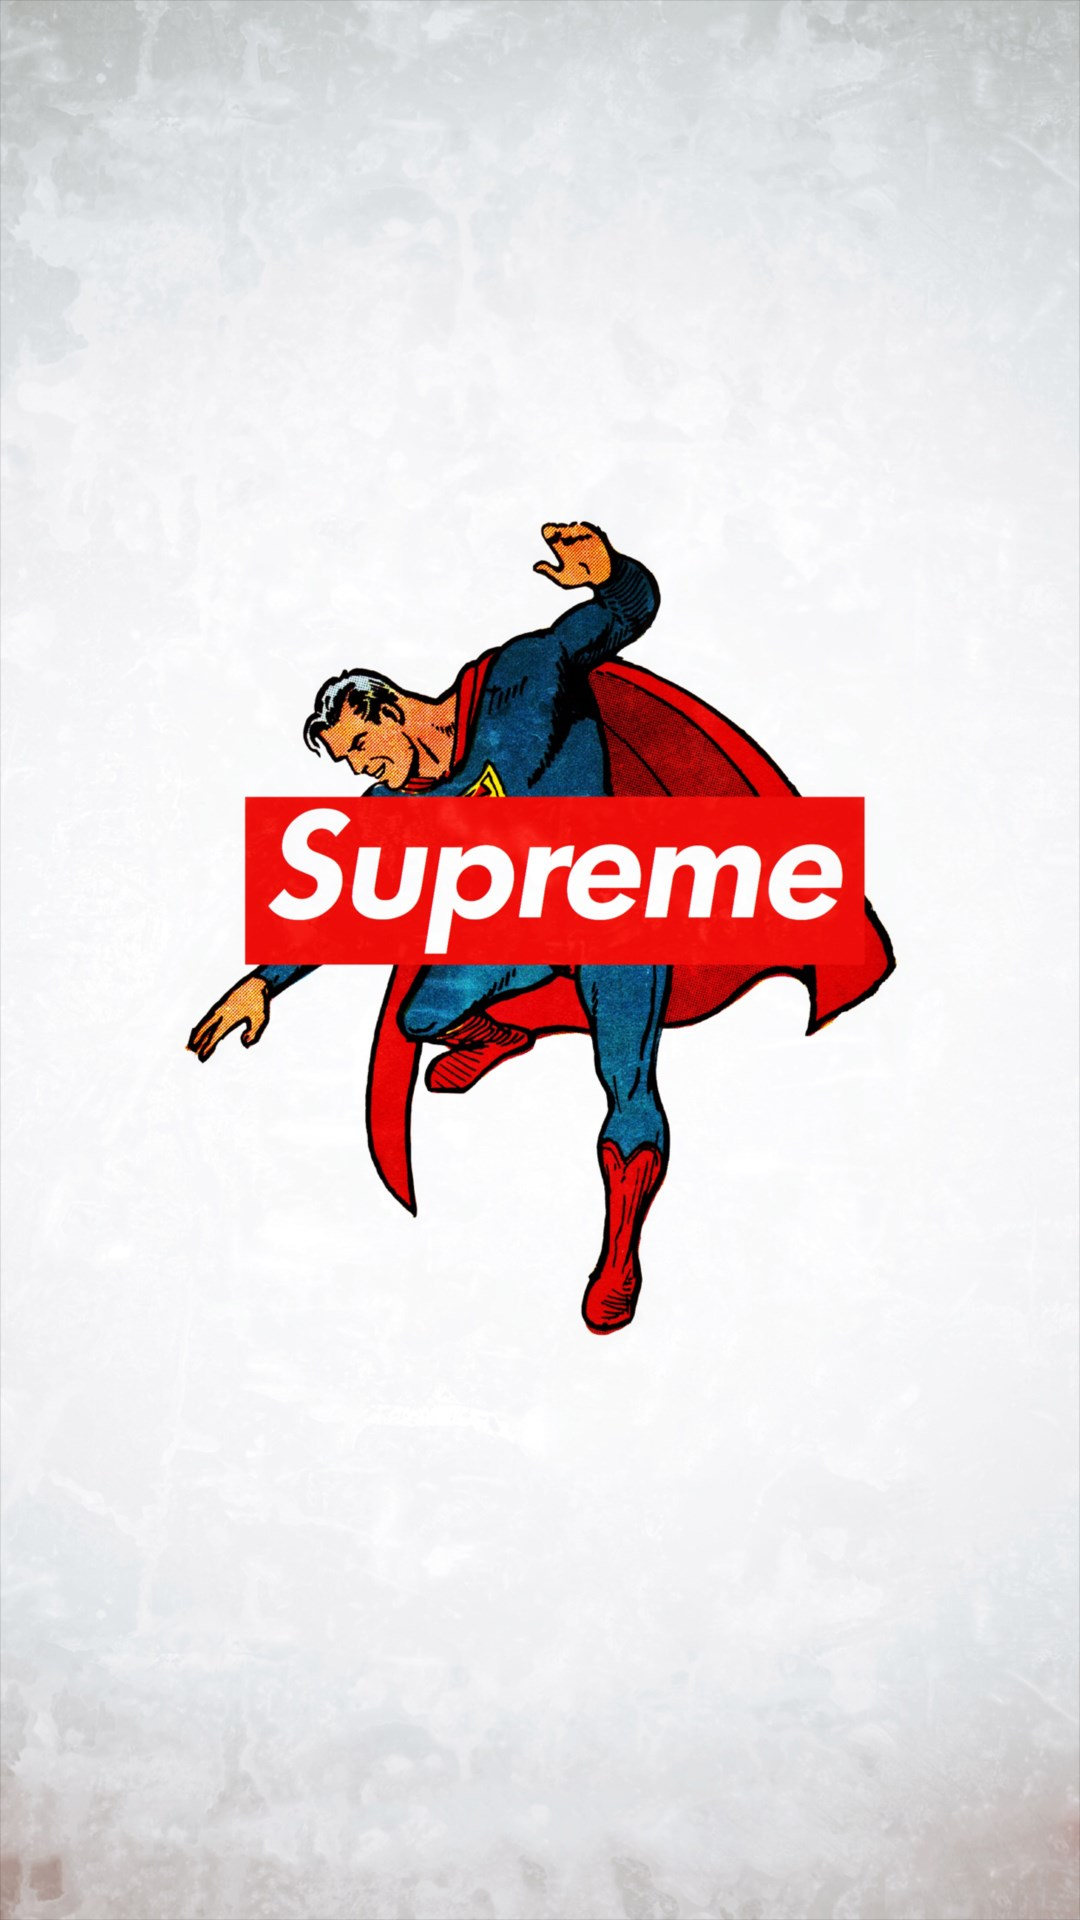 Supreme Wallpaper Iphone 113 images in Collection Page 2 1080x1920